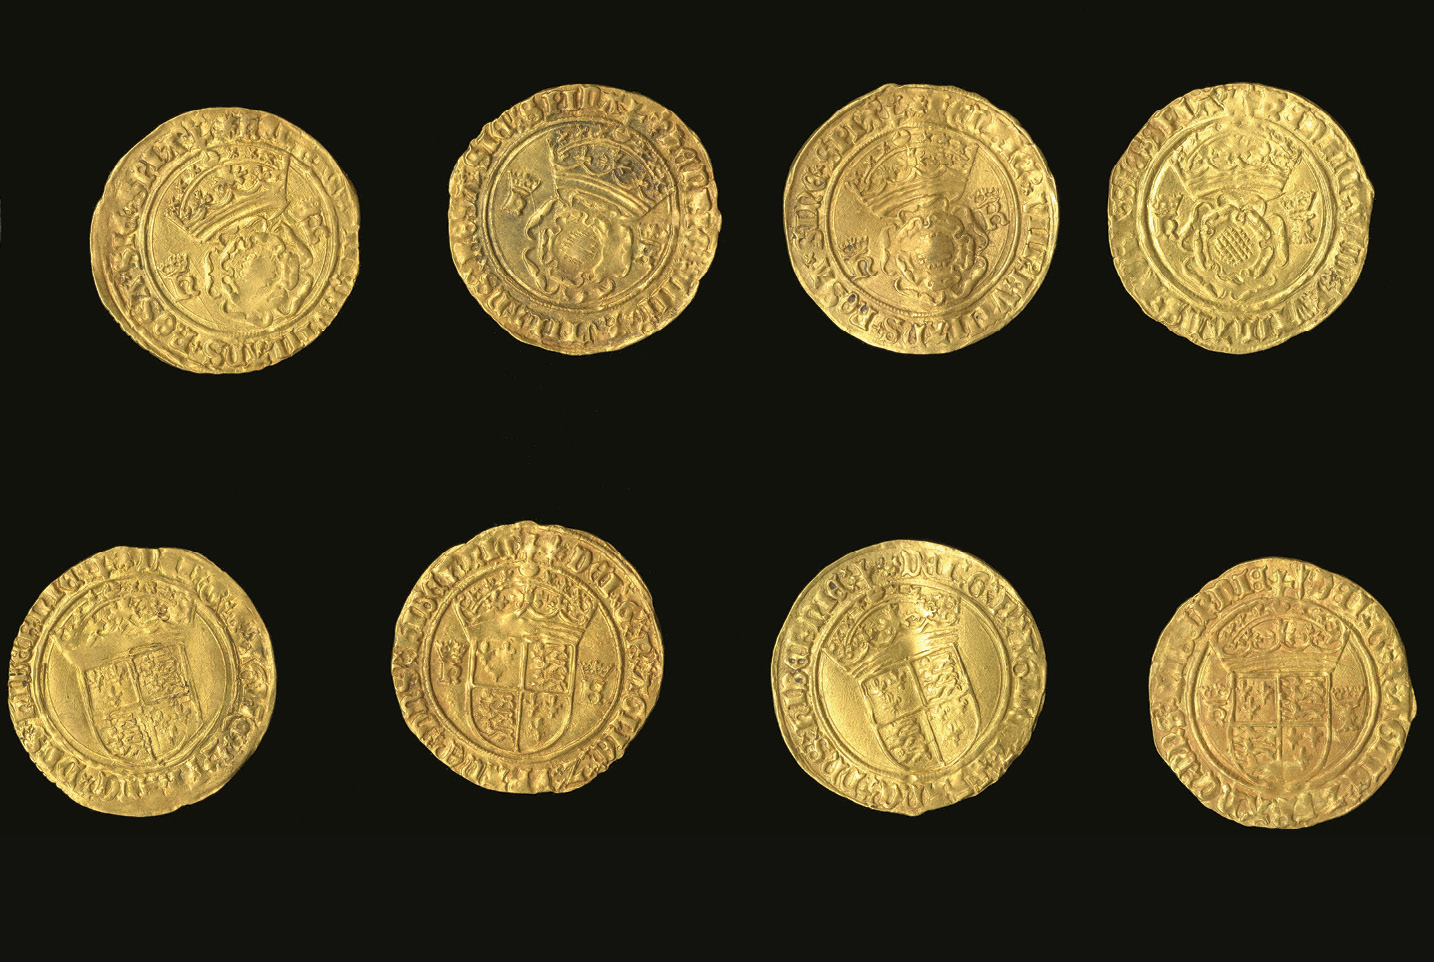 below Within the hoard are four gold crowns, issued by Henry VIII, which are marked with the king's initials and those of his first three wives: Catherine of Aragon, Anne Boleyn, and Jane Seymour.